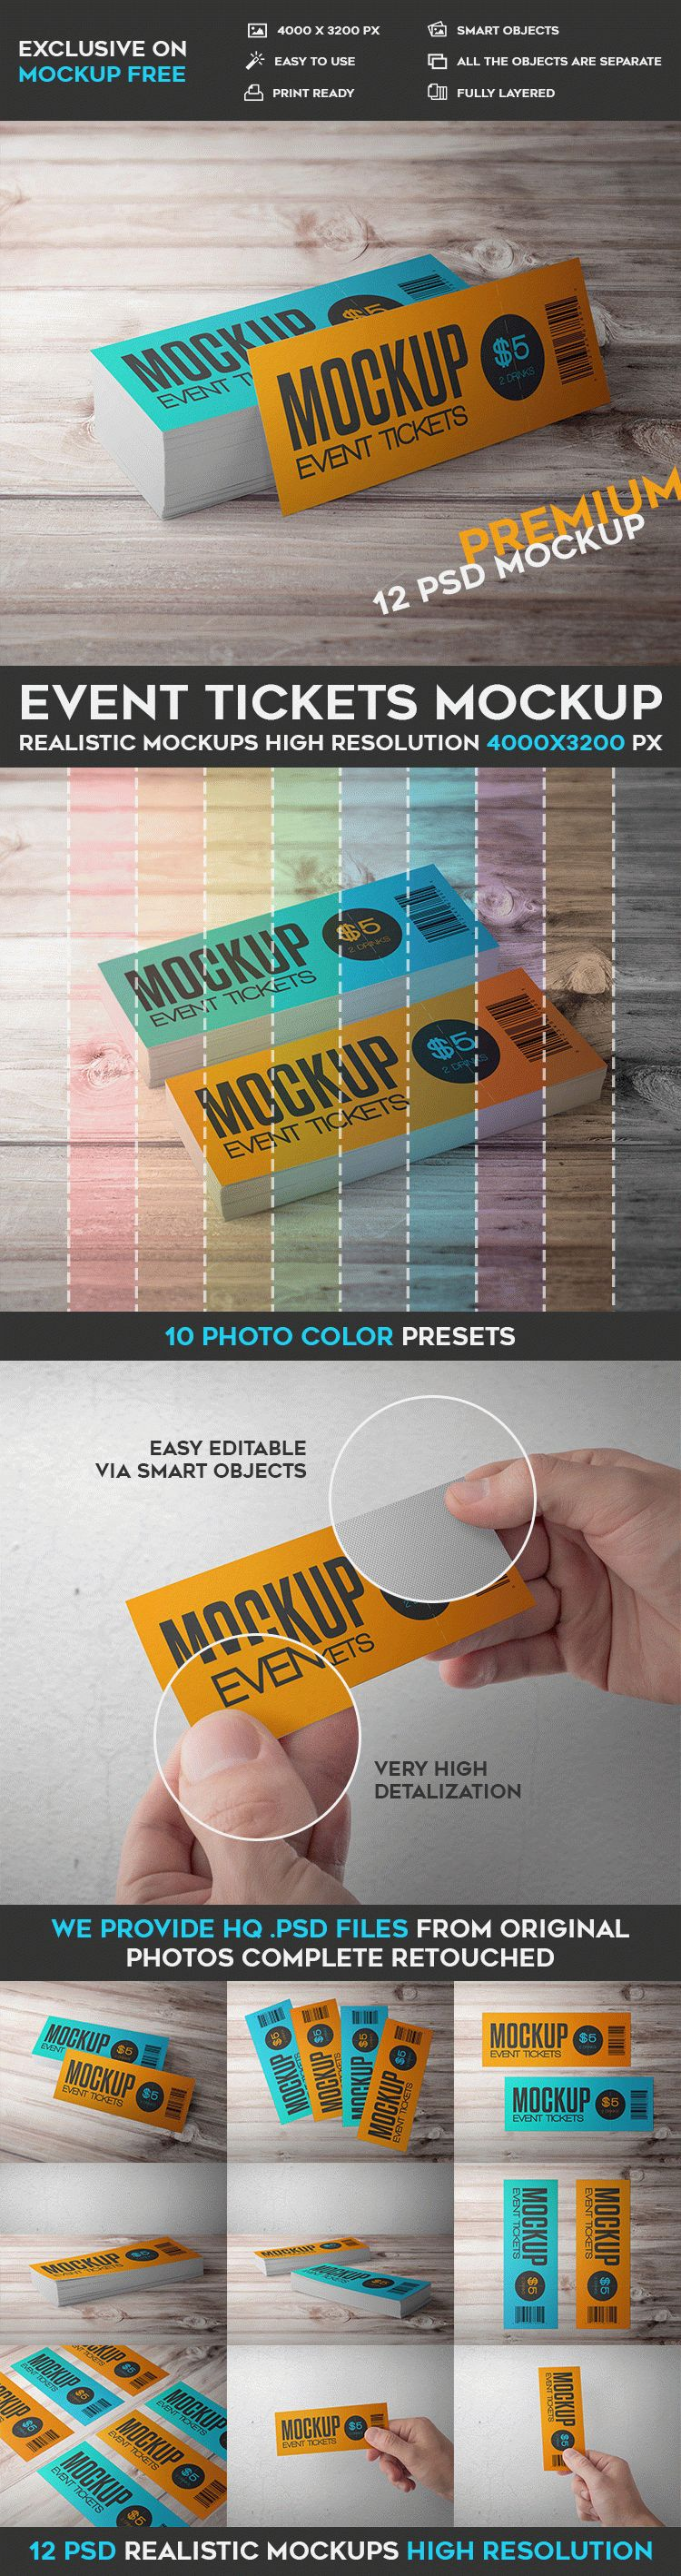 Preview_Big_premium_event-tickets-12-premium-psd-mockups